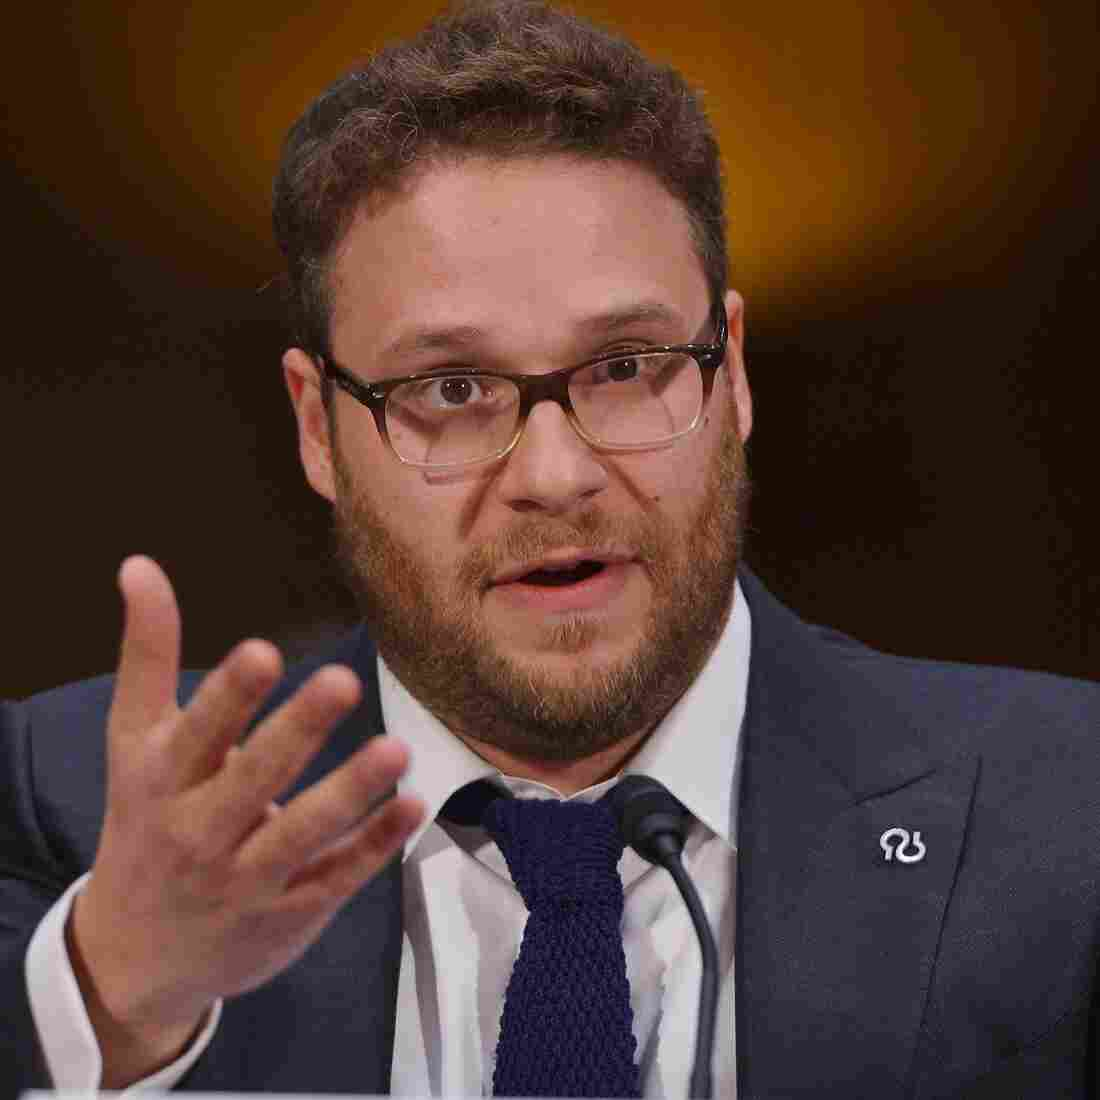 Actor and Alzheimer's advocate Seth Rogen testifies before the Senate Committee on Appropriations about the disease's damaging effects on patients and their loved ones.